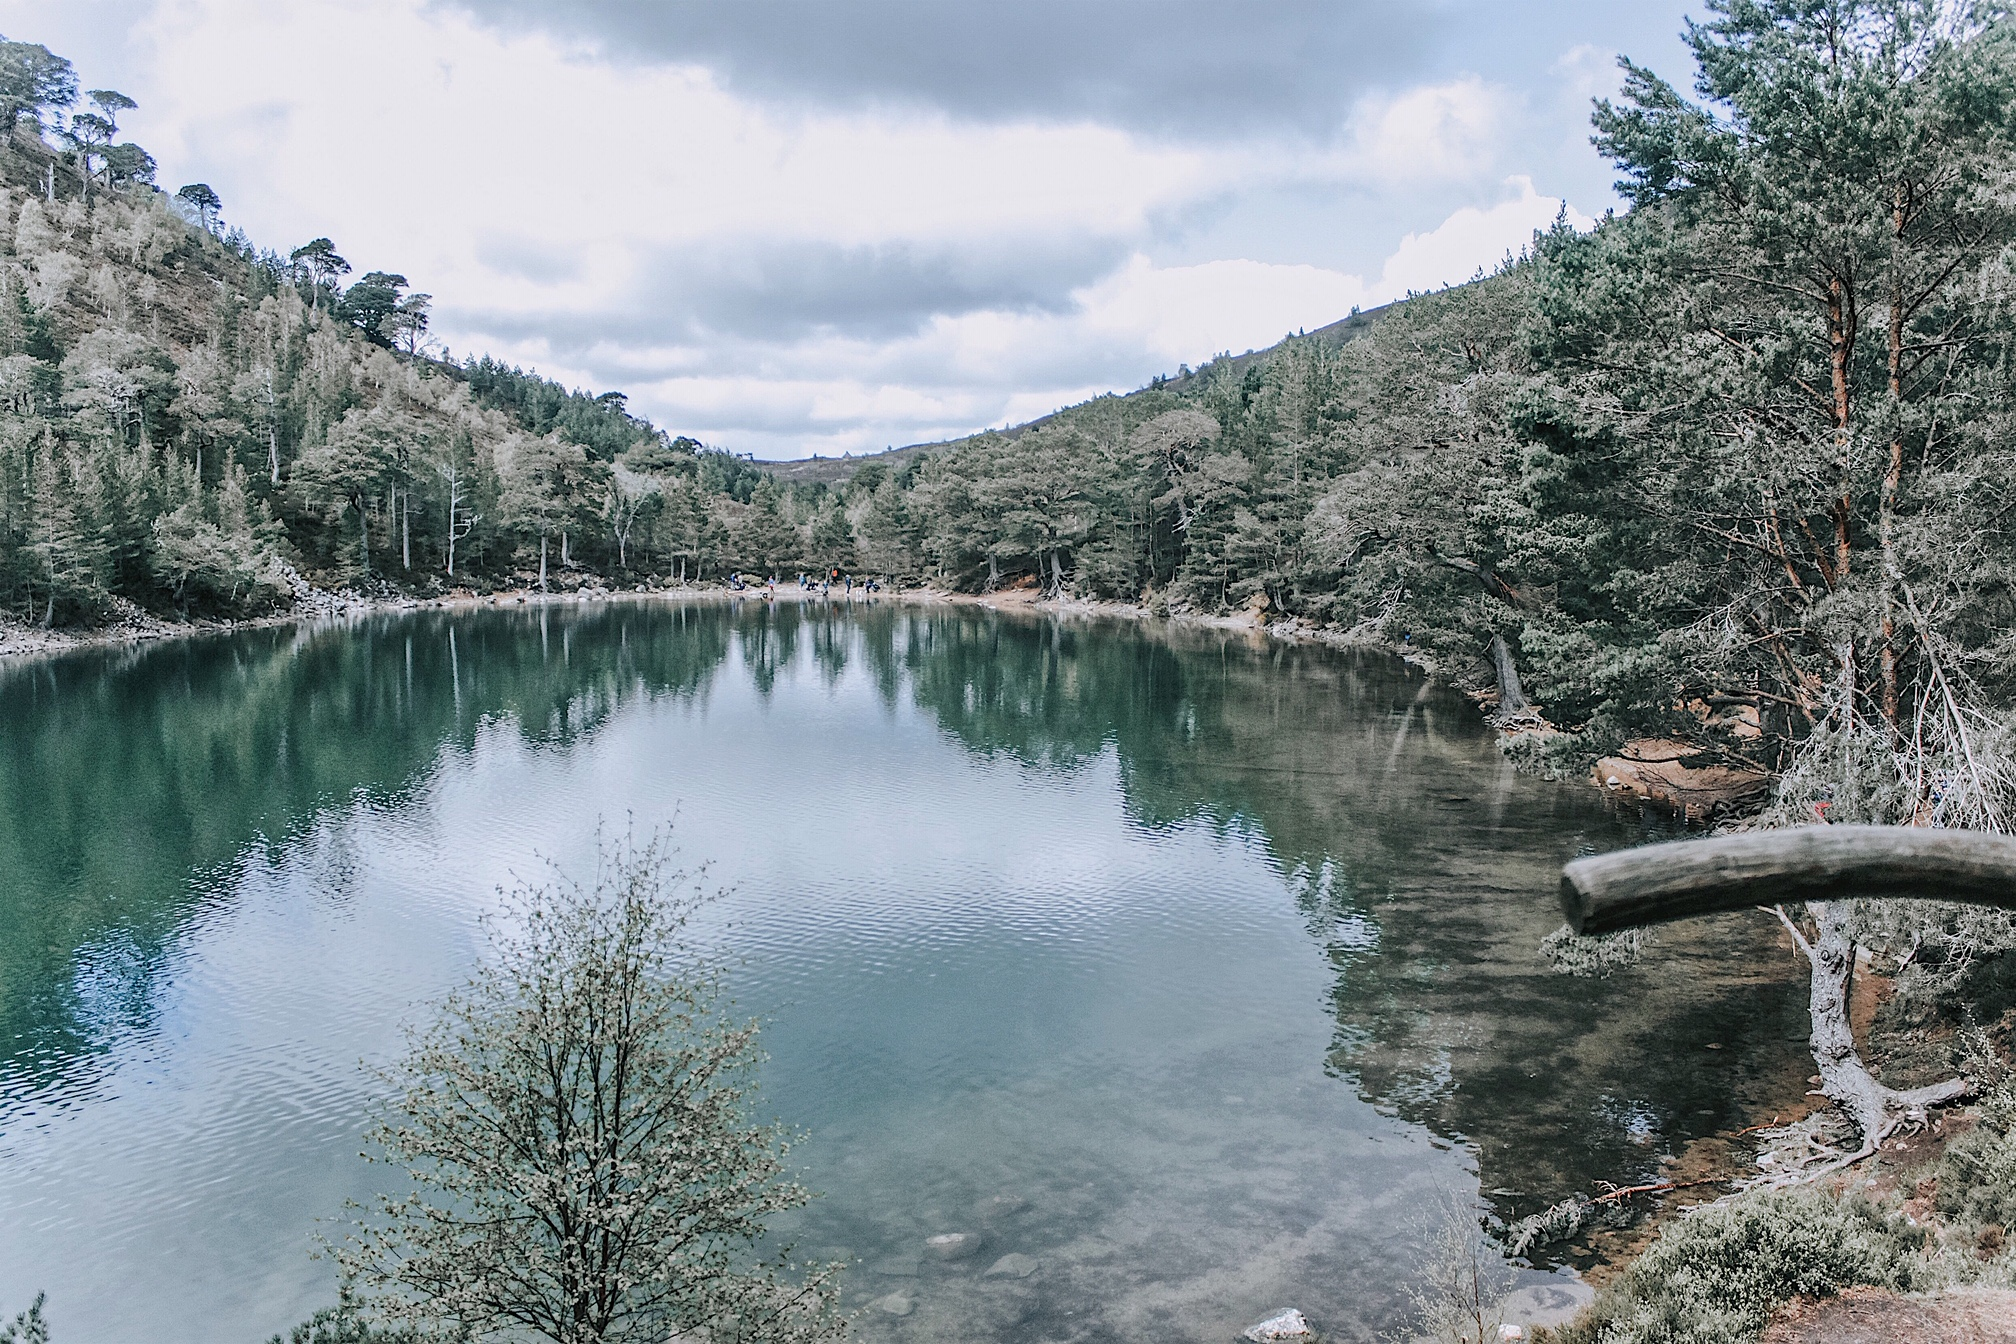 Across the loch from the view point. The Green Loch, Lochan Uaine.